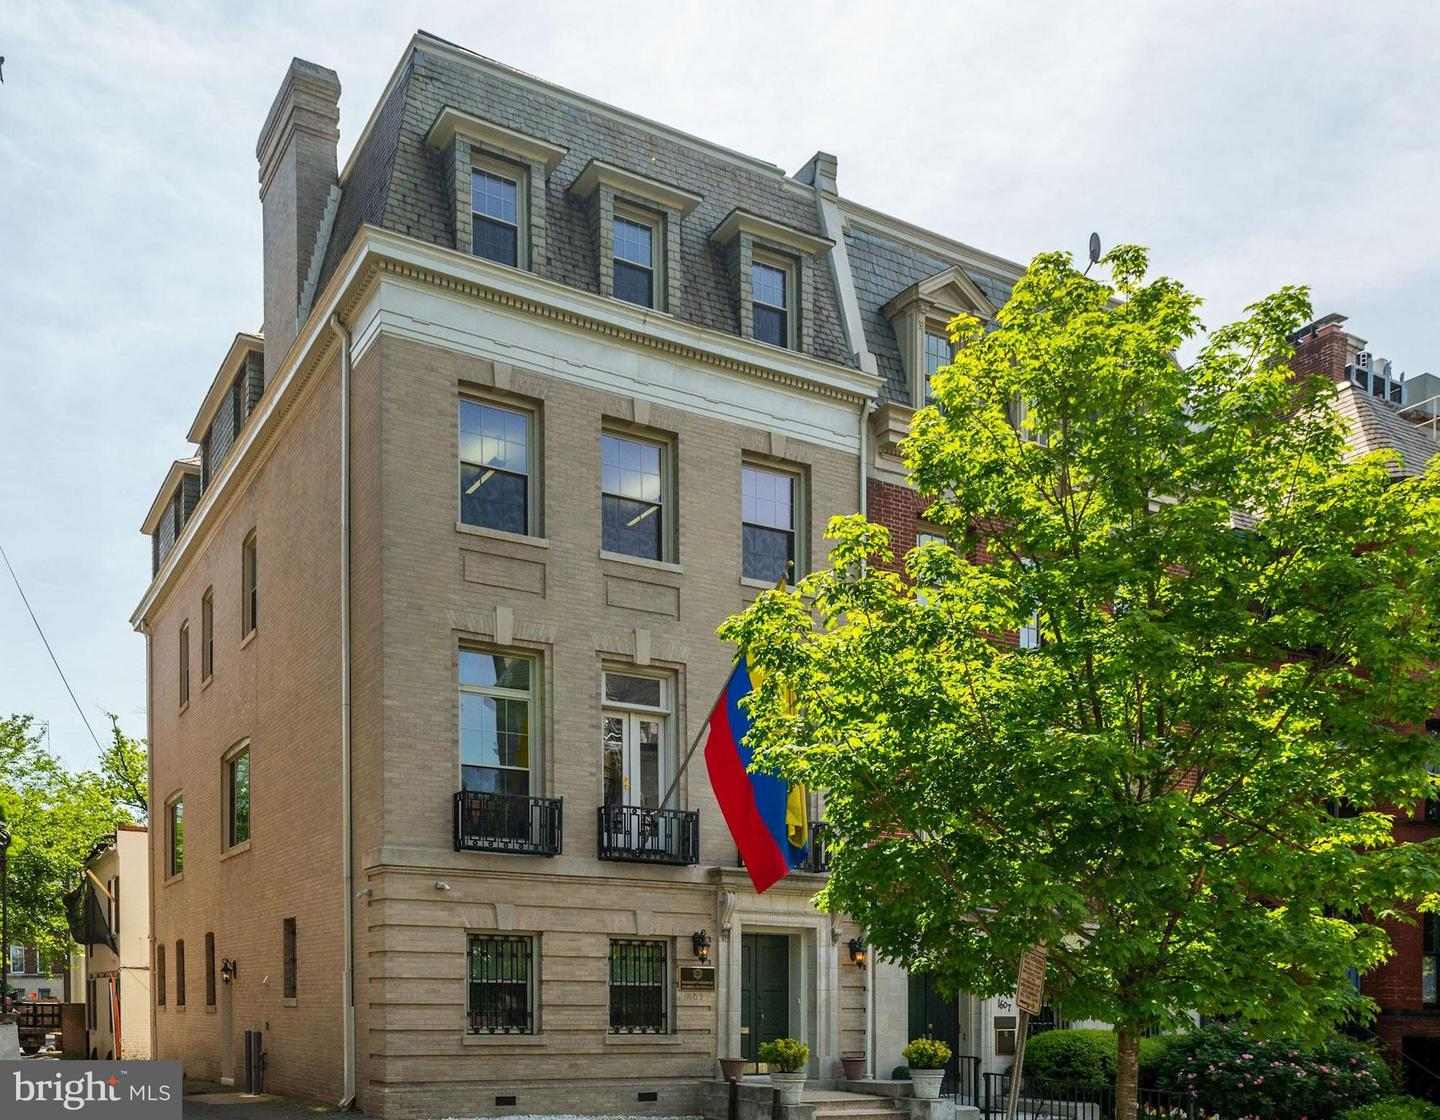 Commercial for Sale at 1609 22nd St Nw 1609 22nd St Nw Washington, District Of Columbia 20008 United States